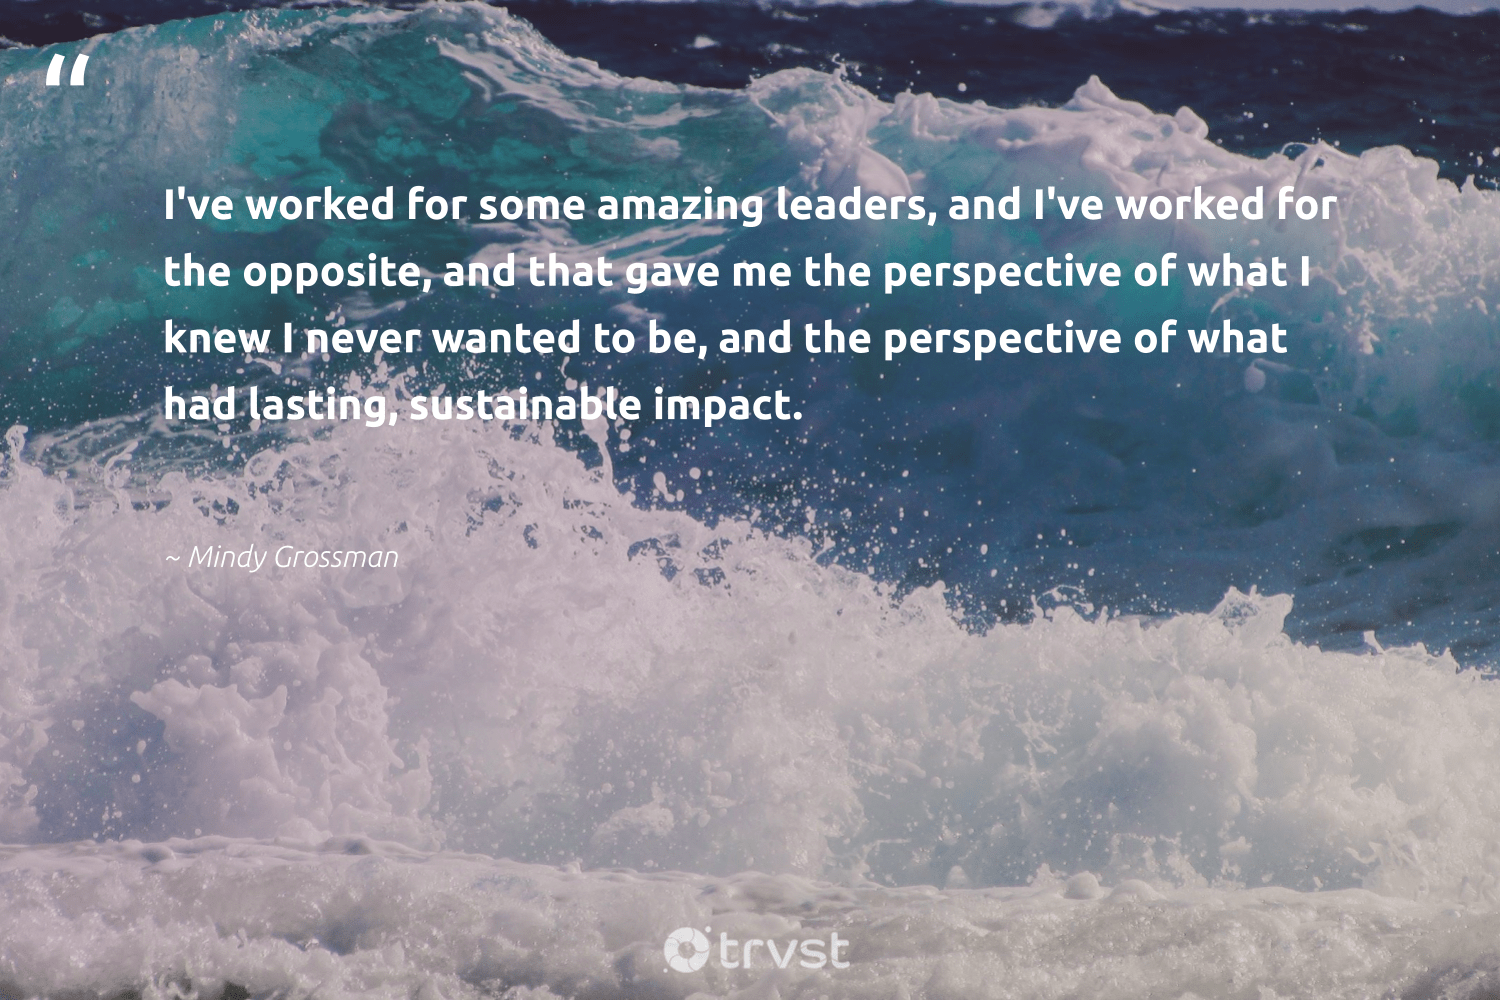 """I've worked for some amazing leaders, and I've worked for the opposite, and that gave me the perspective of what I knew I never wanted to be, and the perspective of what had lasting, sustainable impact.""  - Mindy Grossman #trvst #quotes #impact #sustainable #sustainableliving #softskills #bethechange #changetheworld #sustainability #nevergiveup #gogreen #planetearthfirst"